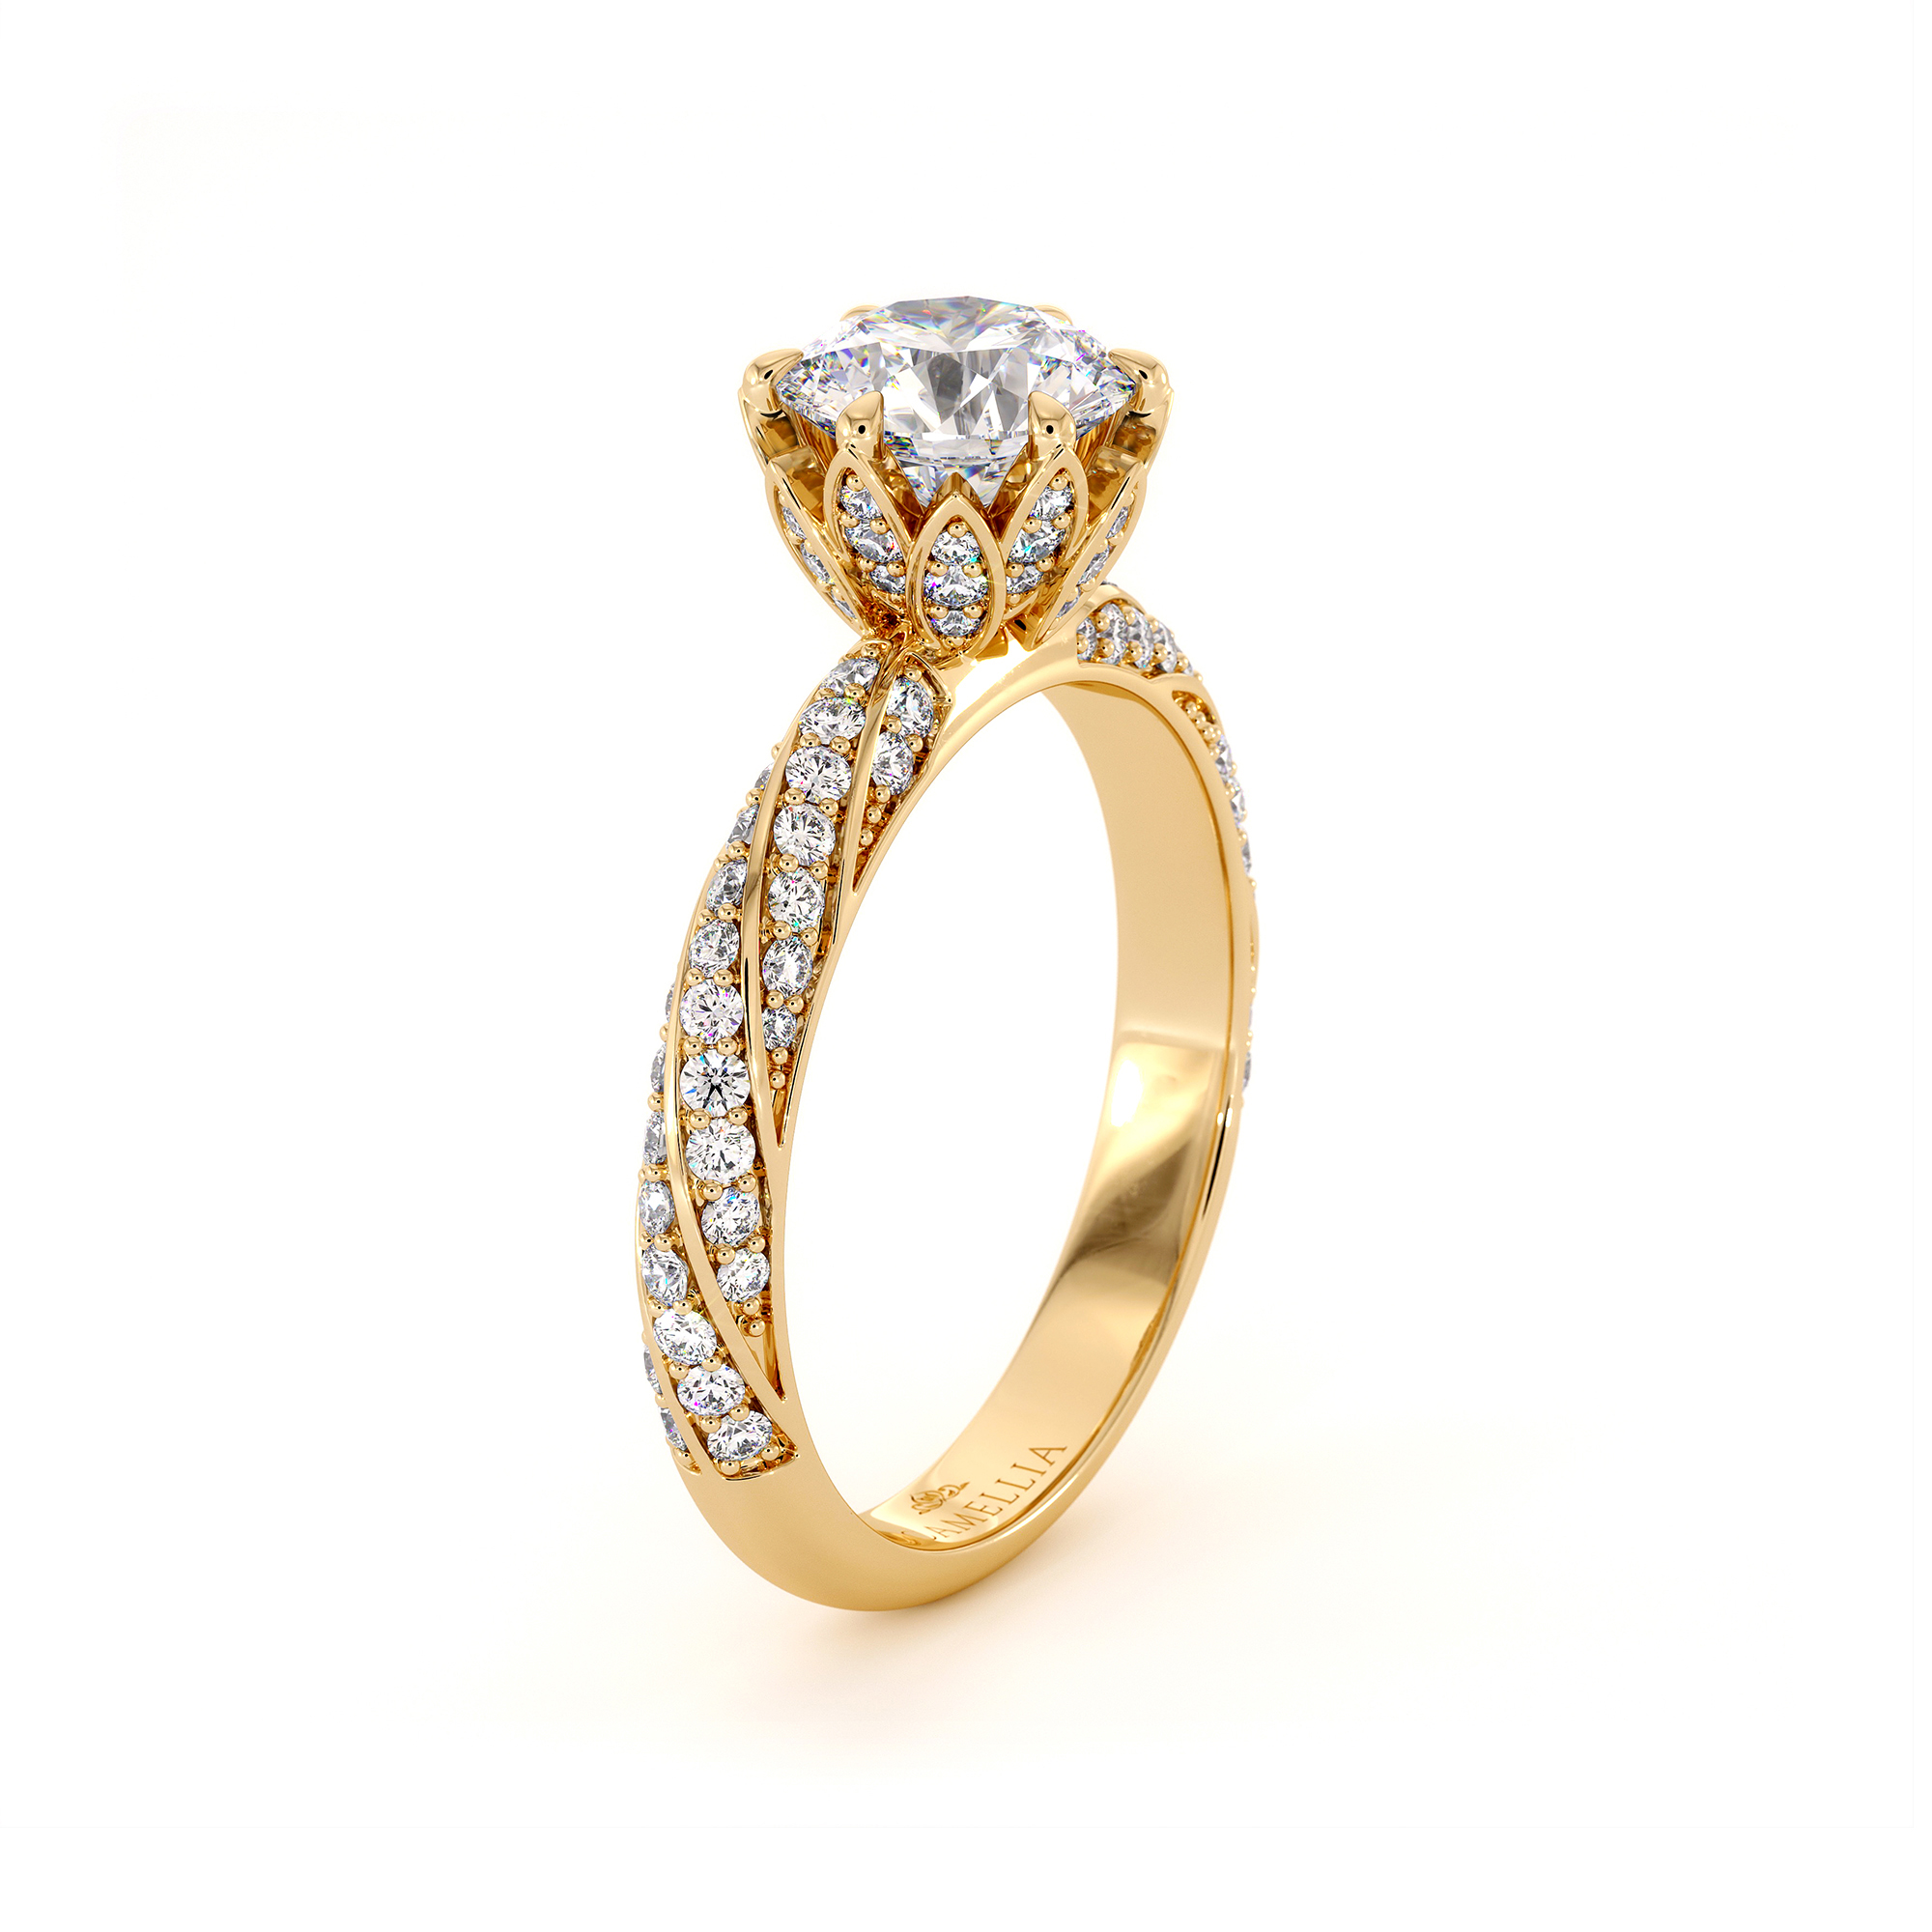 1 Ct Moissanite & Side Natural Diamonds Crown Engagement Ring 14K Gold For Her Unique Classic Ring